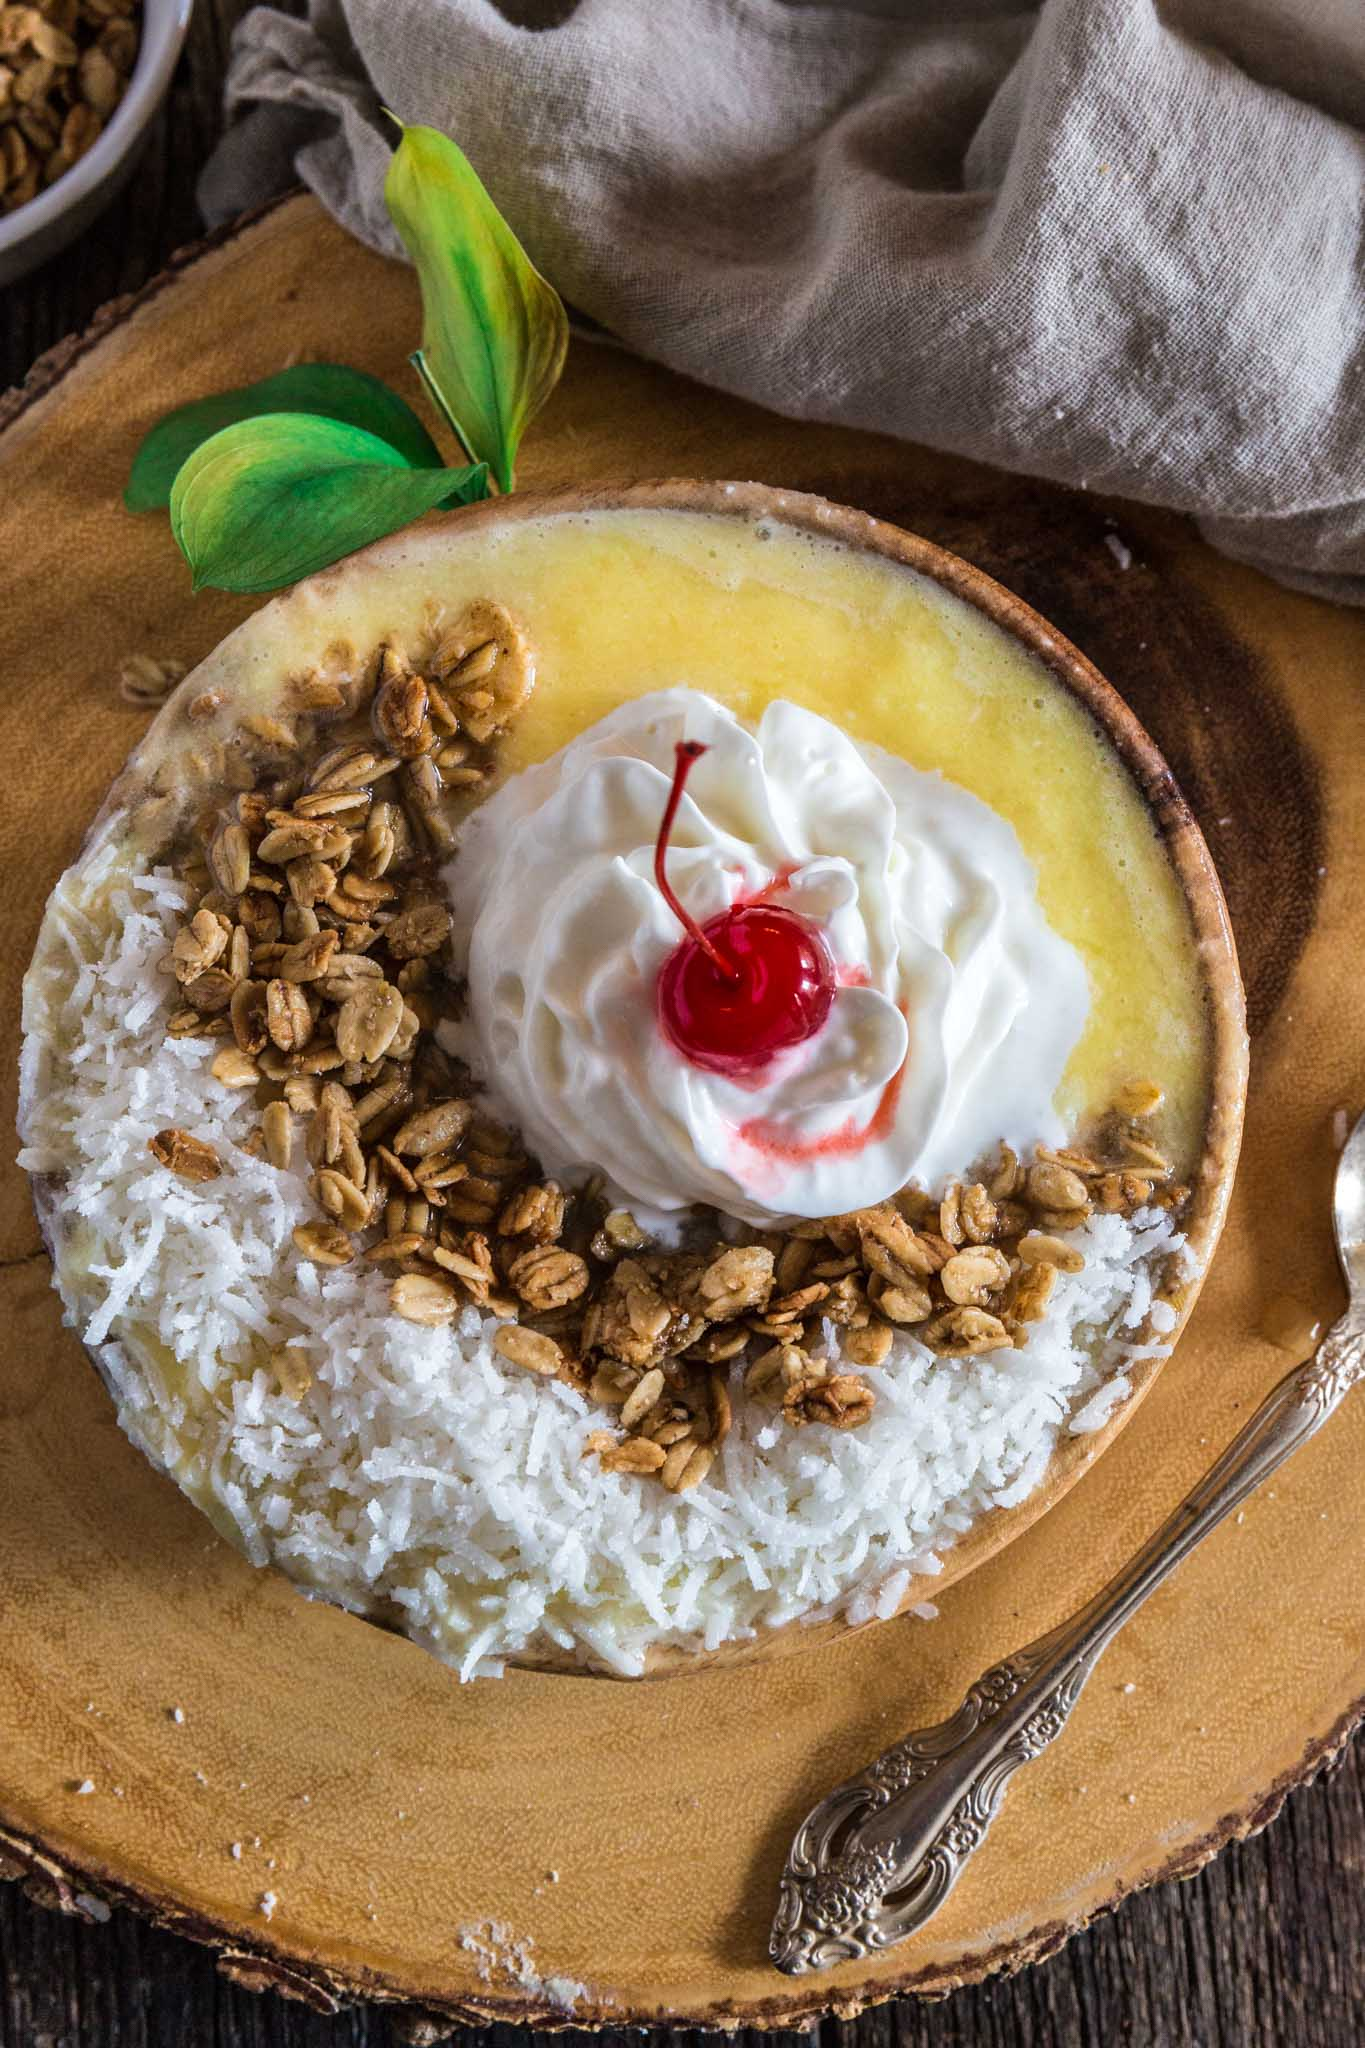 Pina Colada Smoothie Bowl   www.oliviascuisine.com   Can't escape to a beach somewhere at the moment? No problem! Make this Pina Colada Smoothie Bowl and you'll feel like you're in a tropical paradise. (Recipe and food photography by @oliviascuisine.)